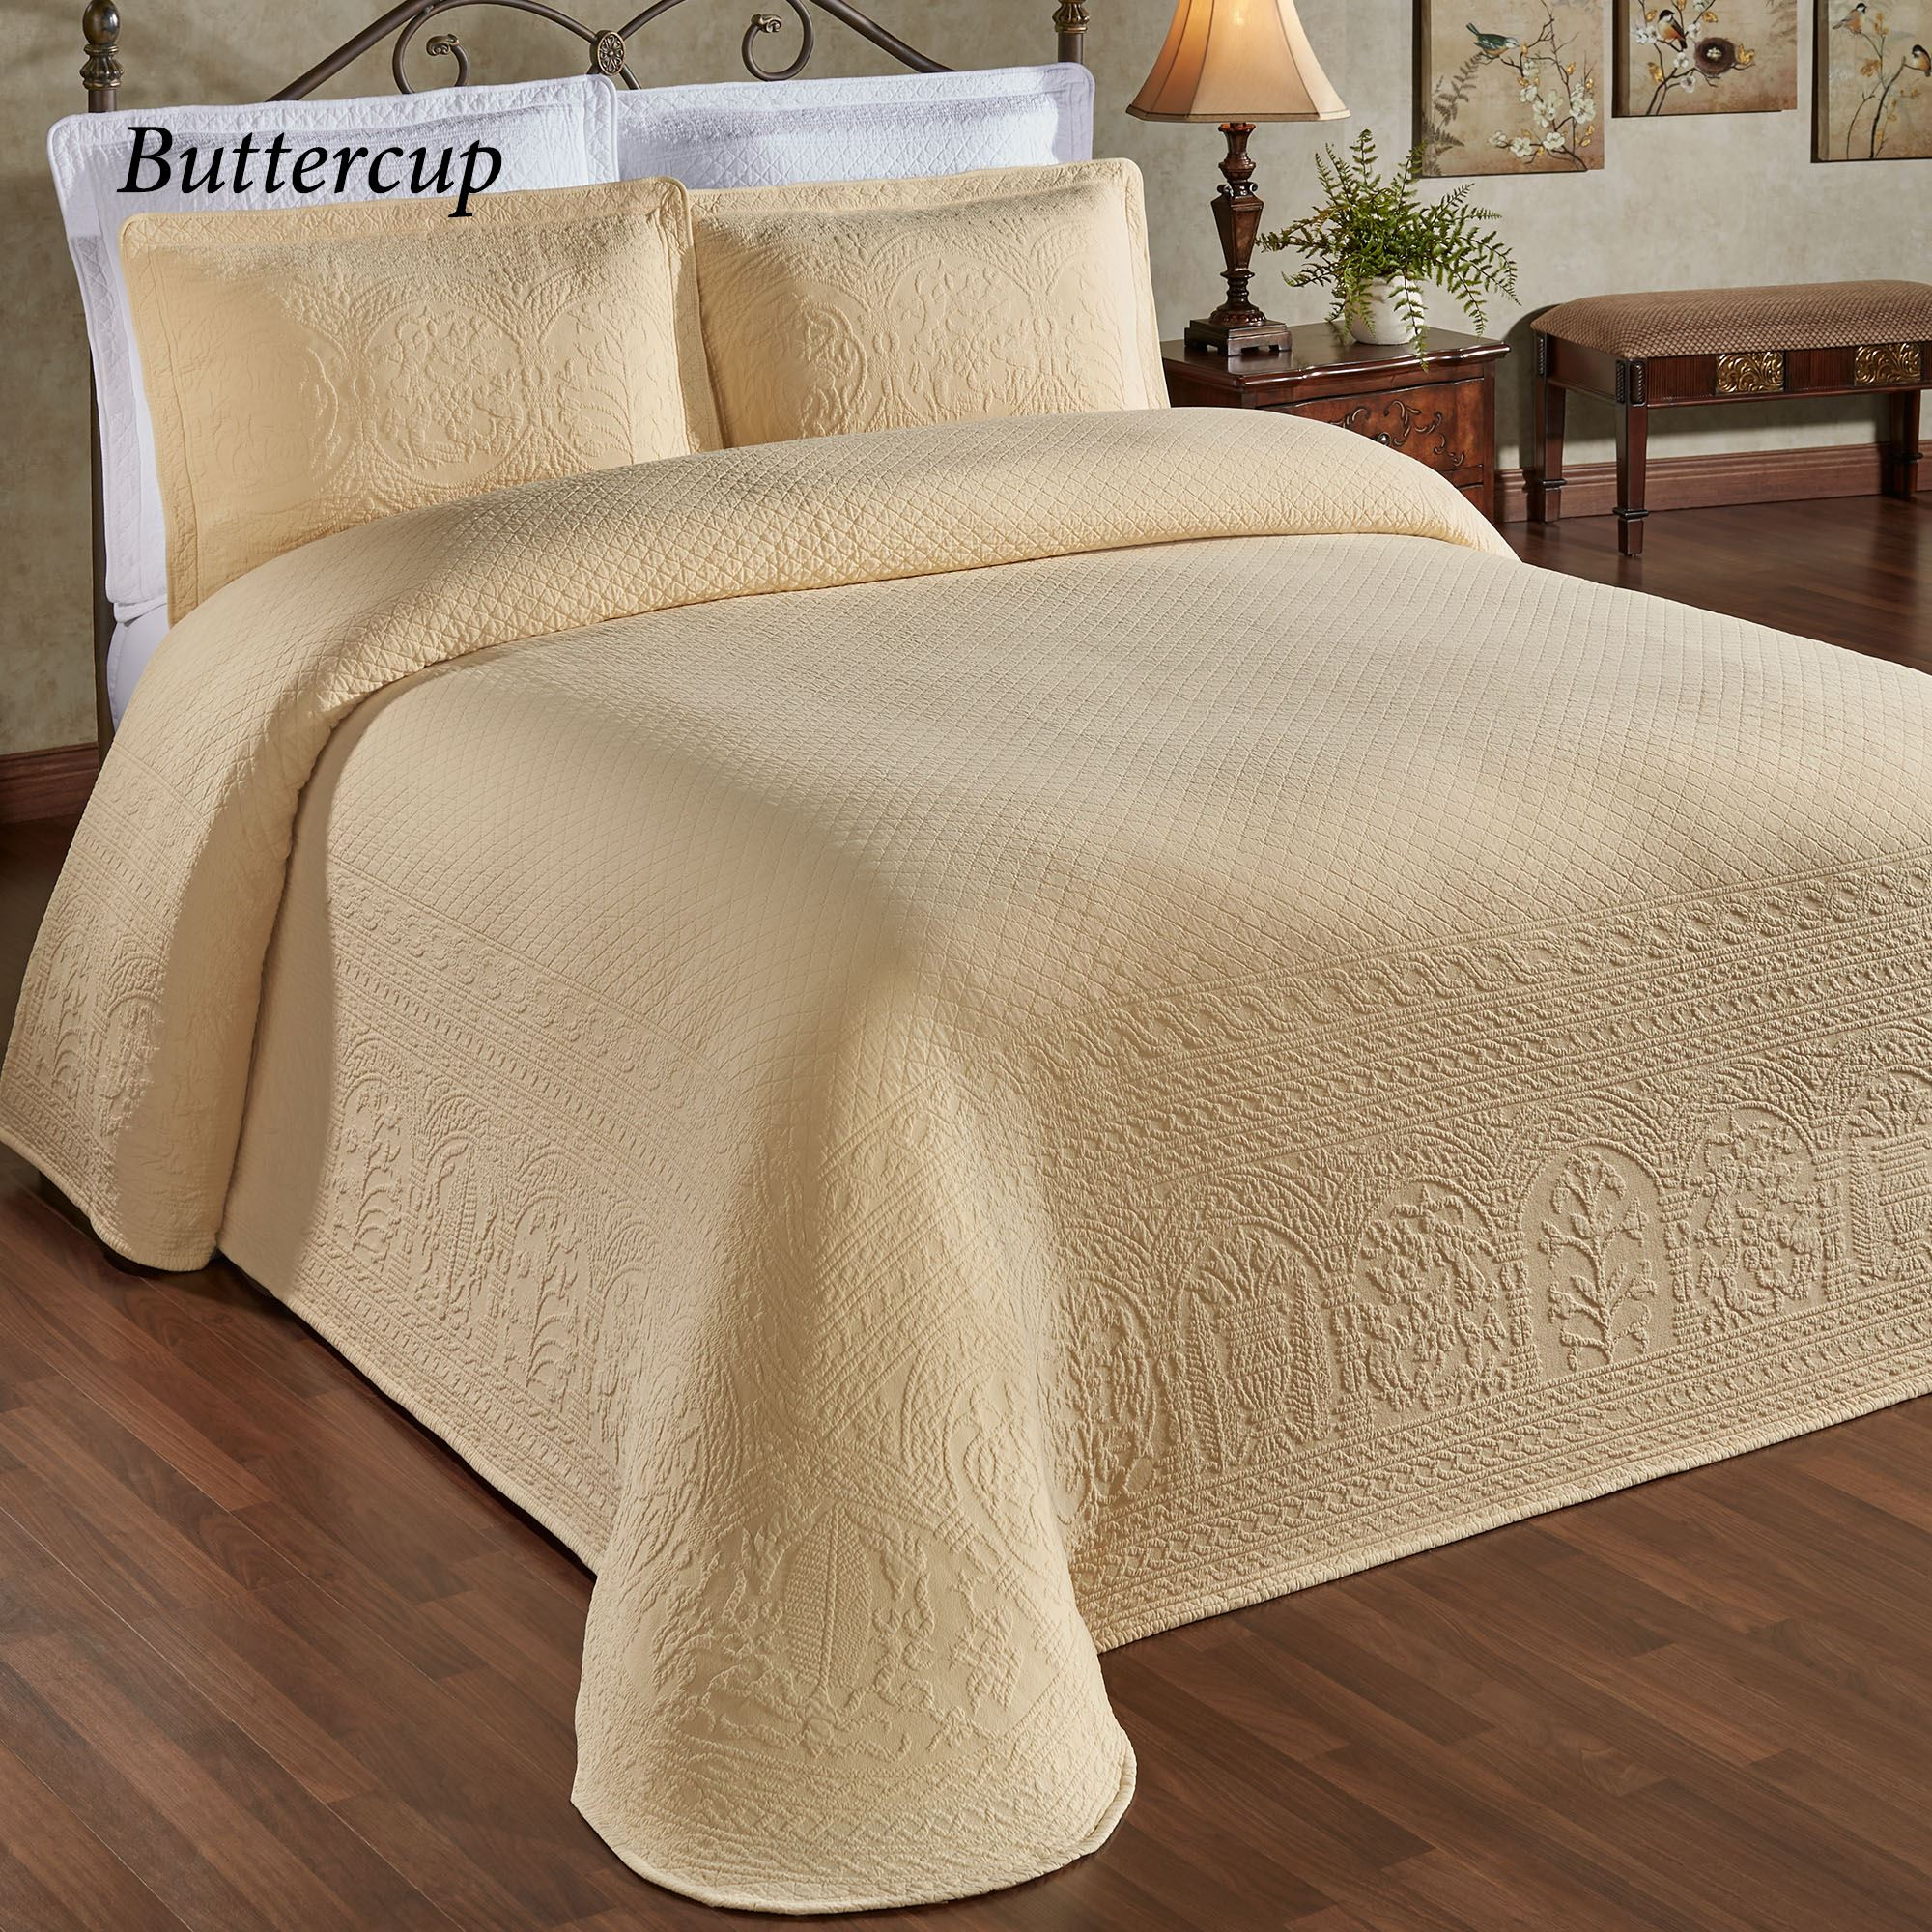 william and mary ii lightweight woven matelasse bedspreads. Black Bedroom Furniture Sets. Home Design Ideas